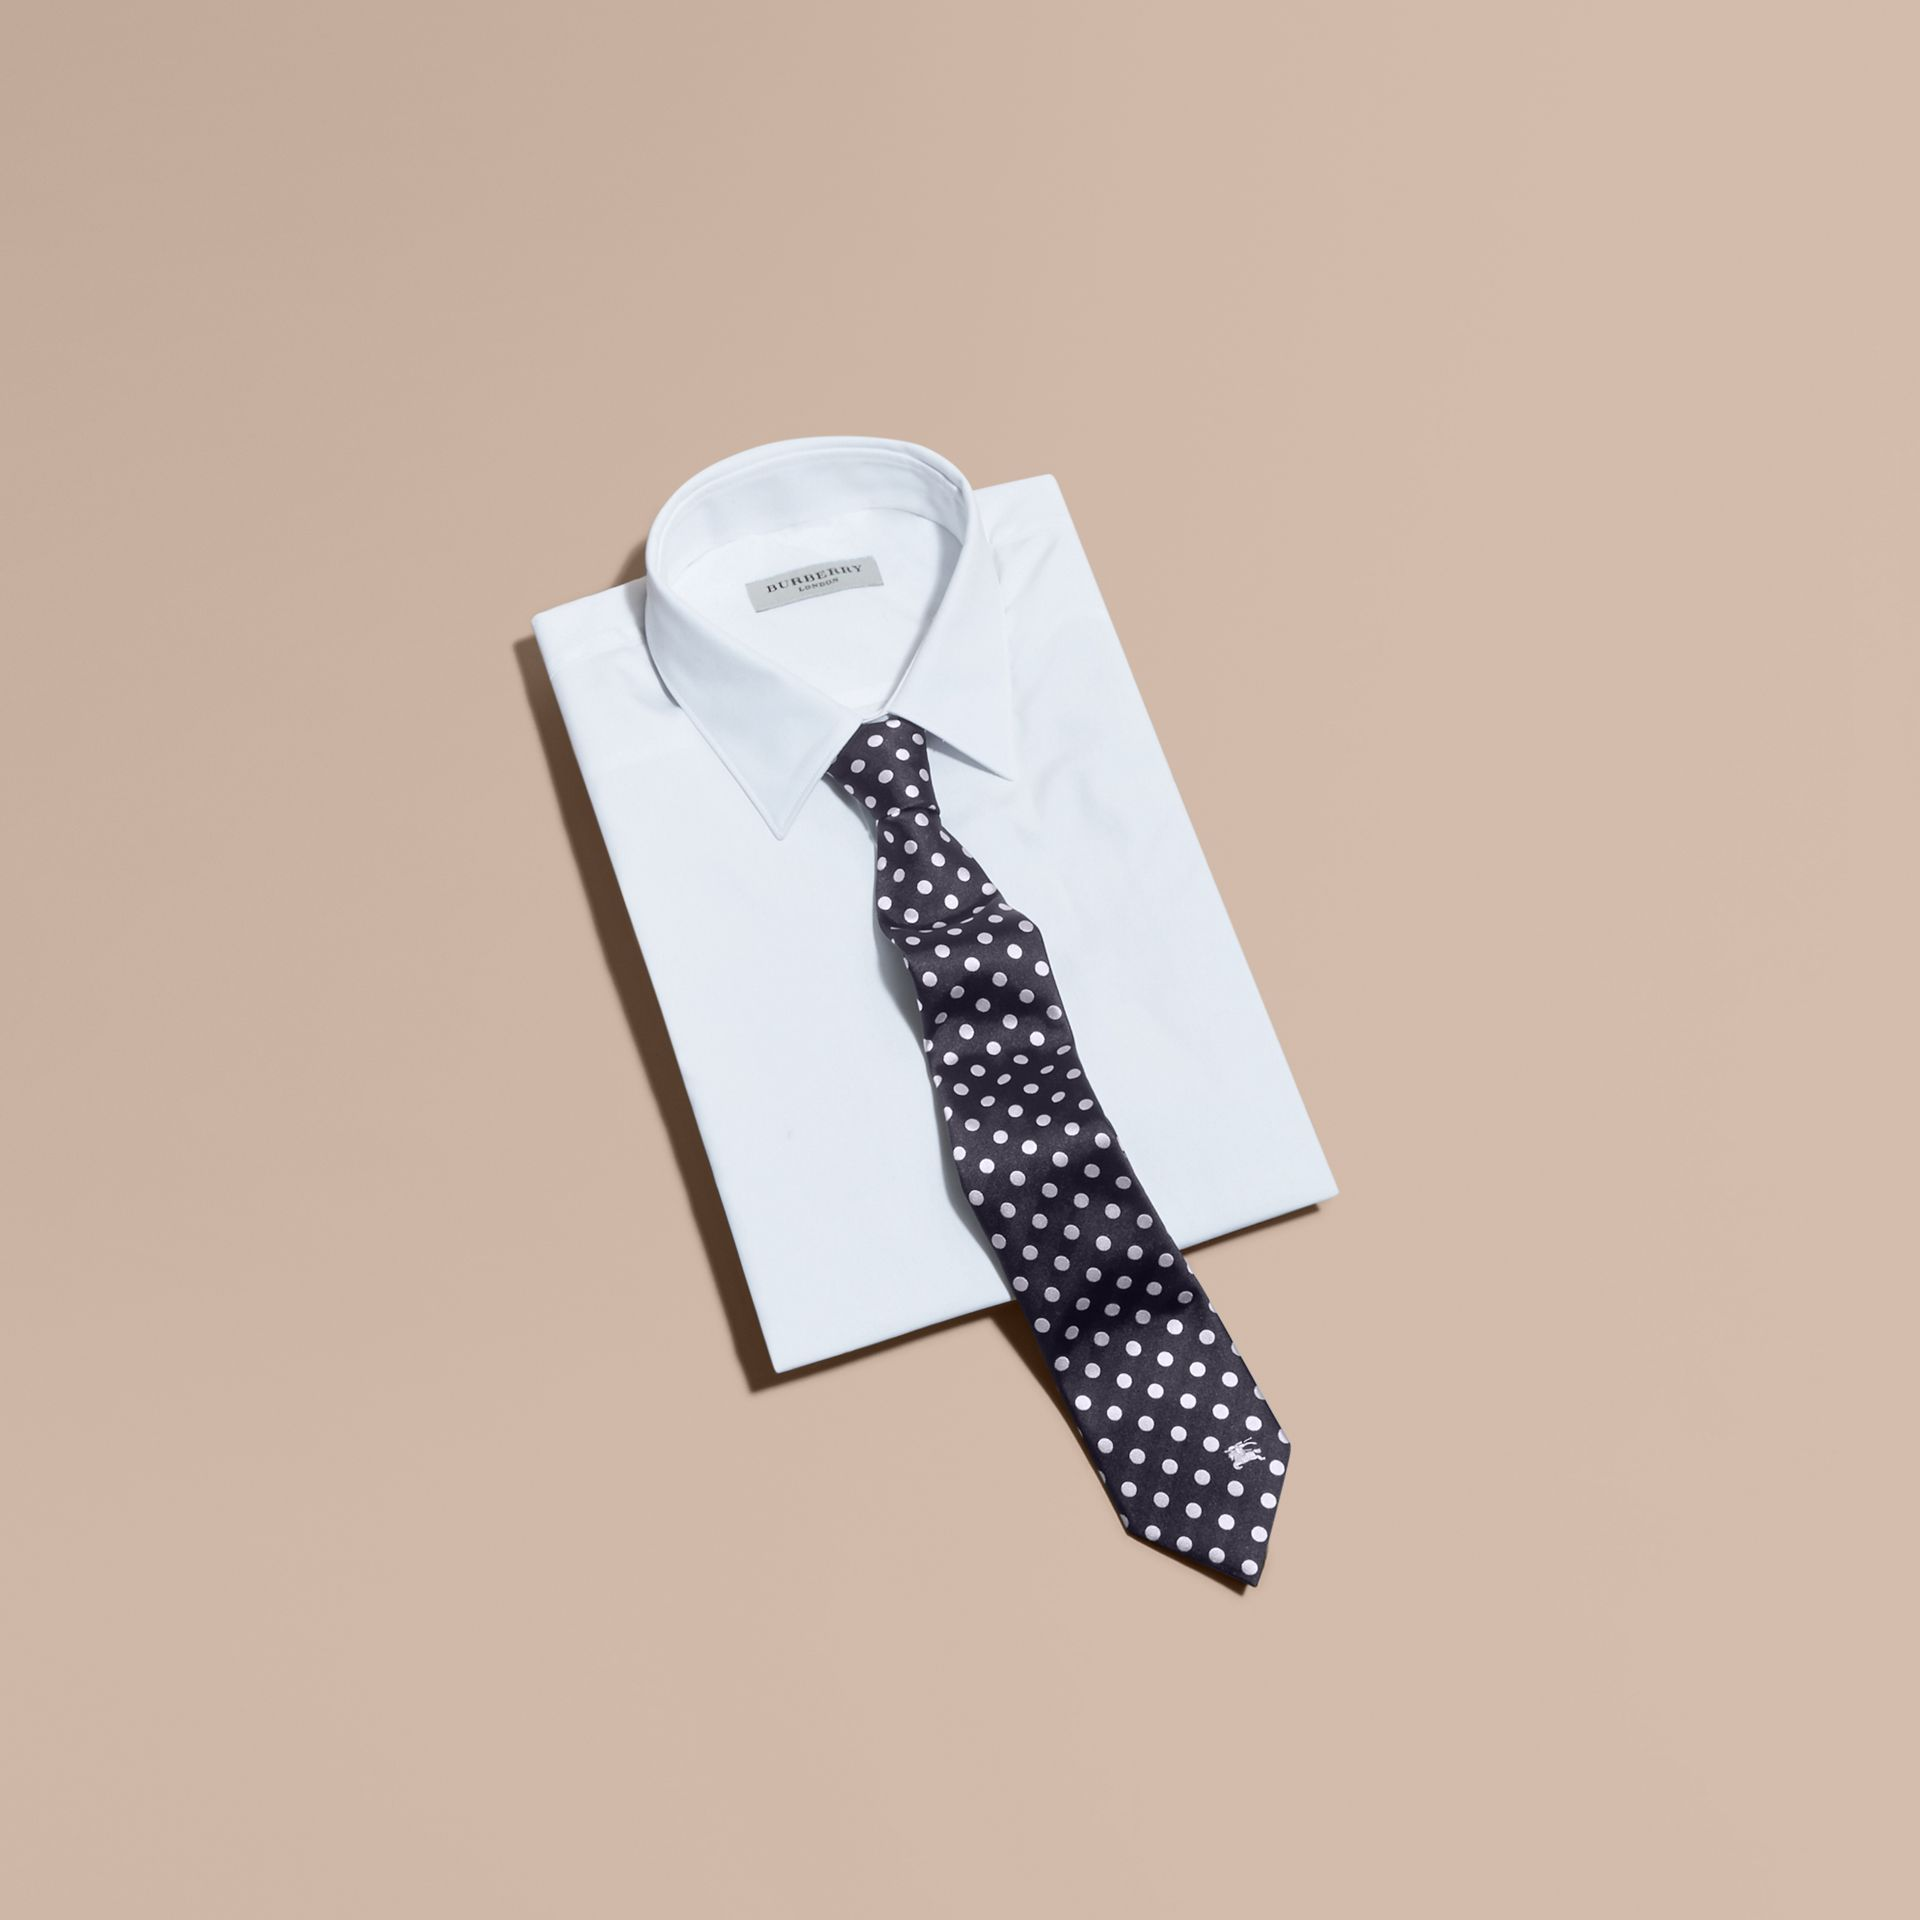 Modern Cut Polka-dot Silk Jacquard Tie in Dark Navy - Men | Burberry United Kingdom - gallery image 3